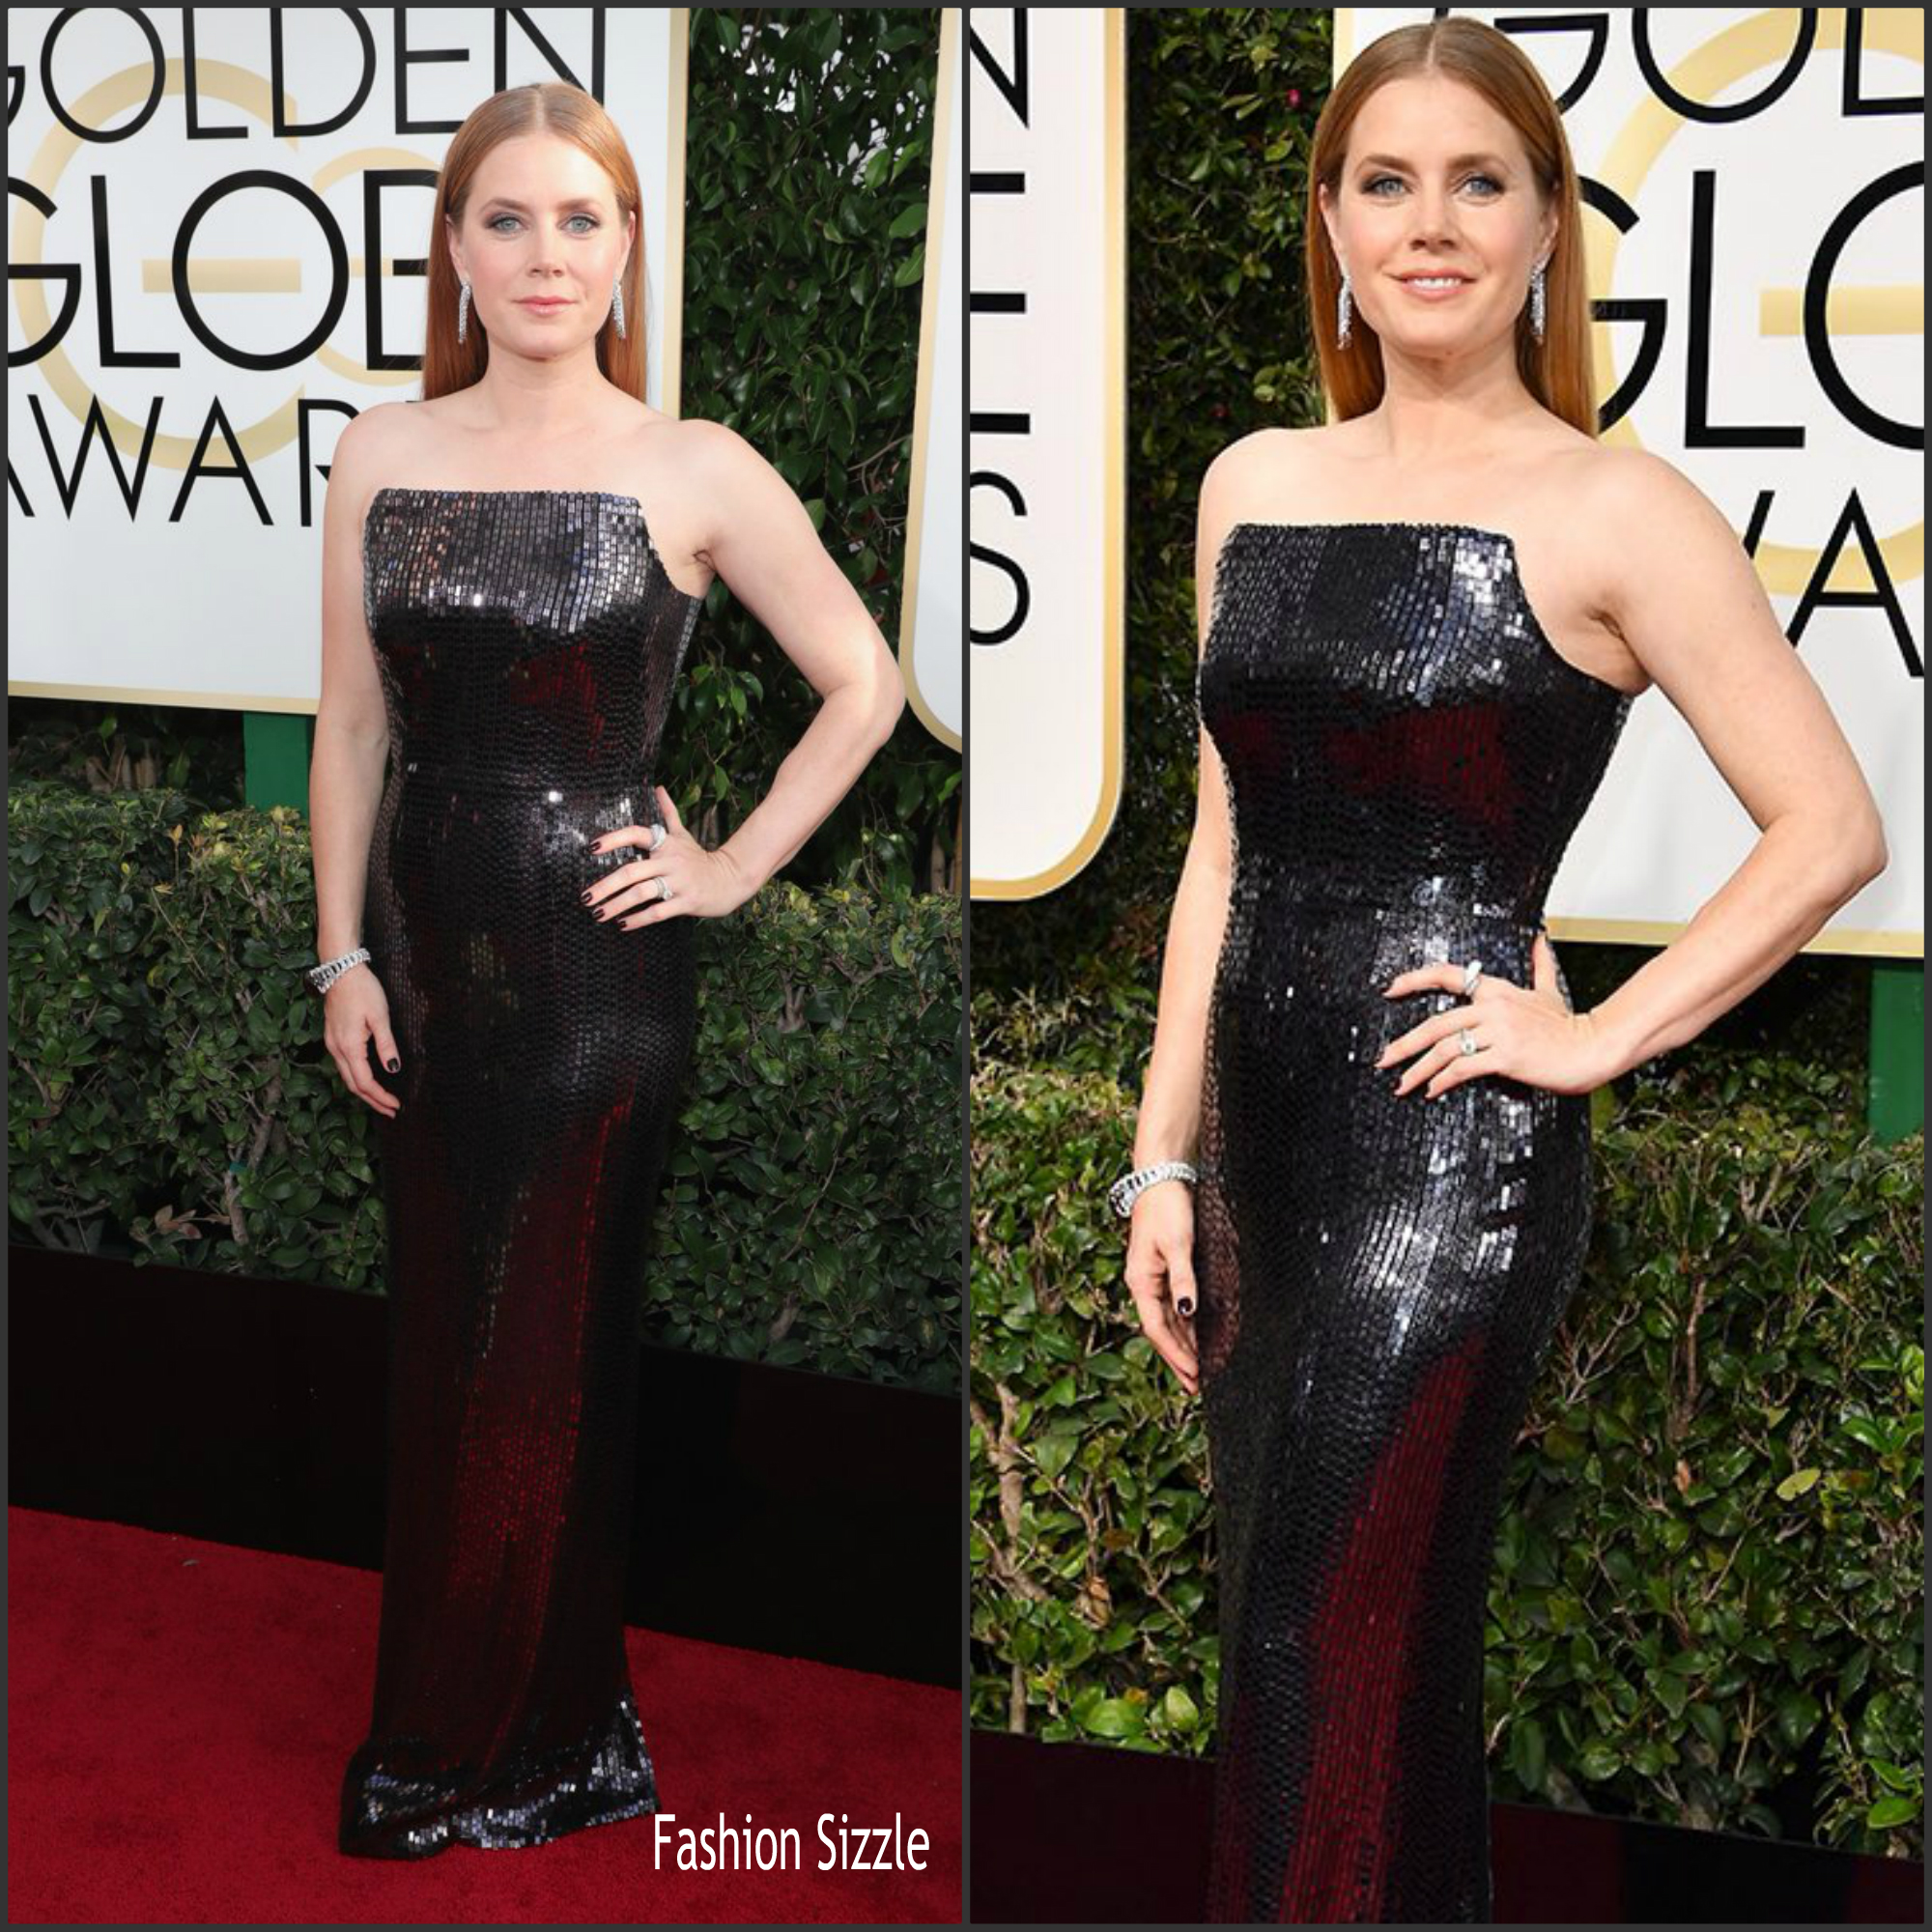 amy-adams-in-tom-ford-at-2017-golden-globe-awards